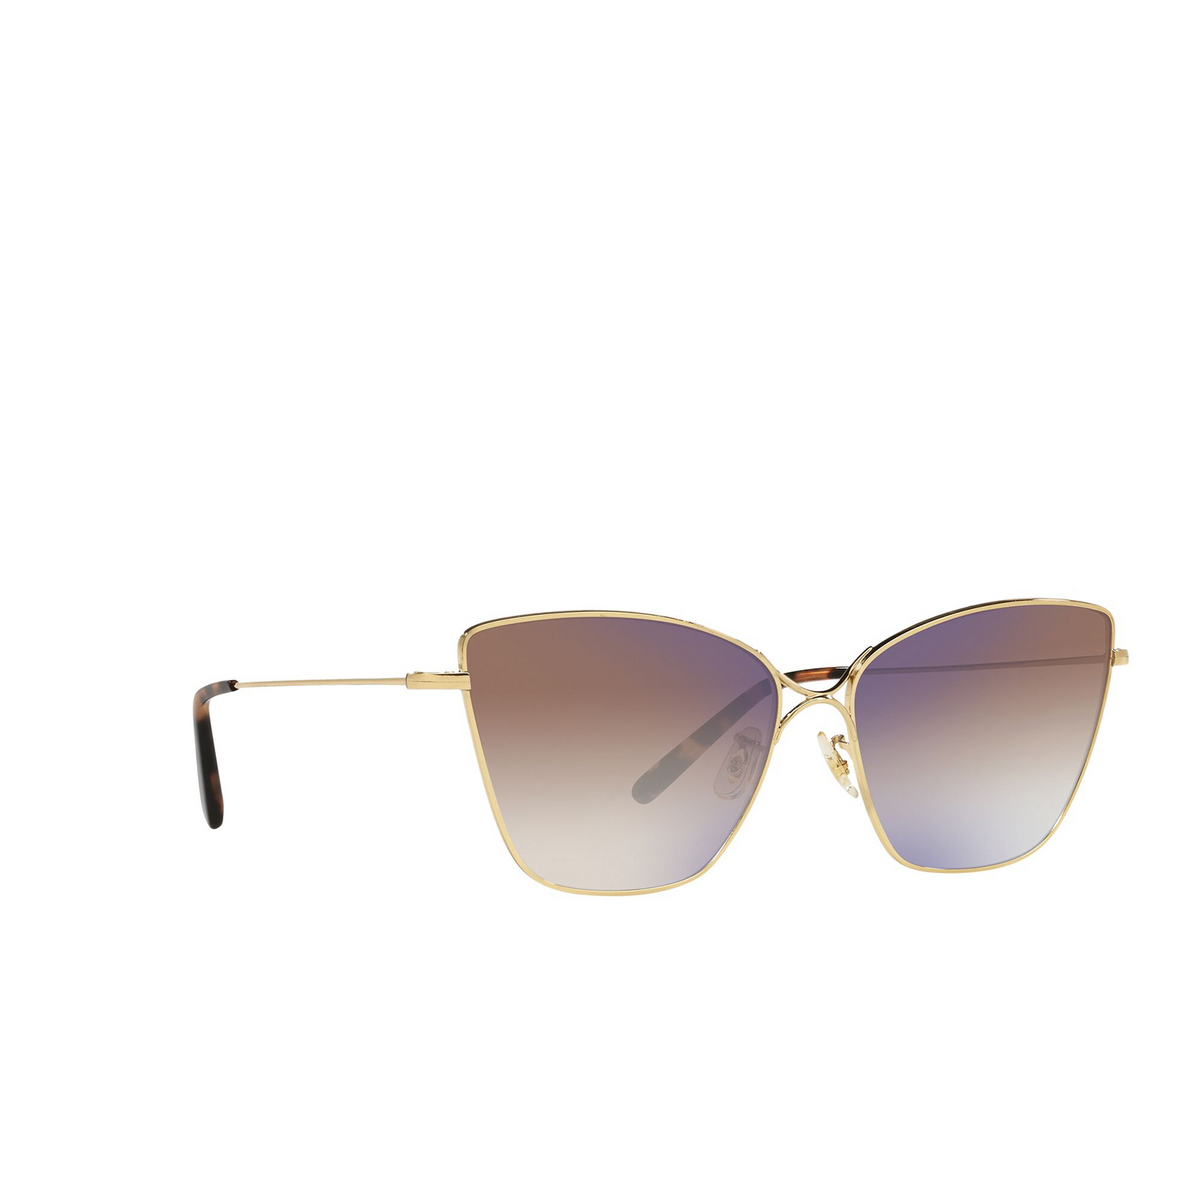 Oliver Peoples® Butterfly Sunglasses: Marlyse OV1288S color Gold 5145K3 - three-quarters view.